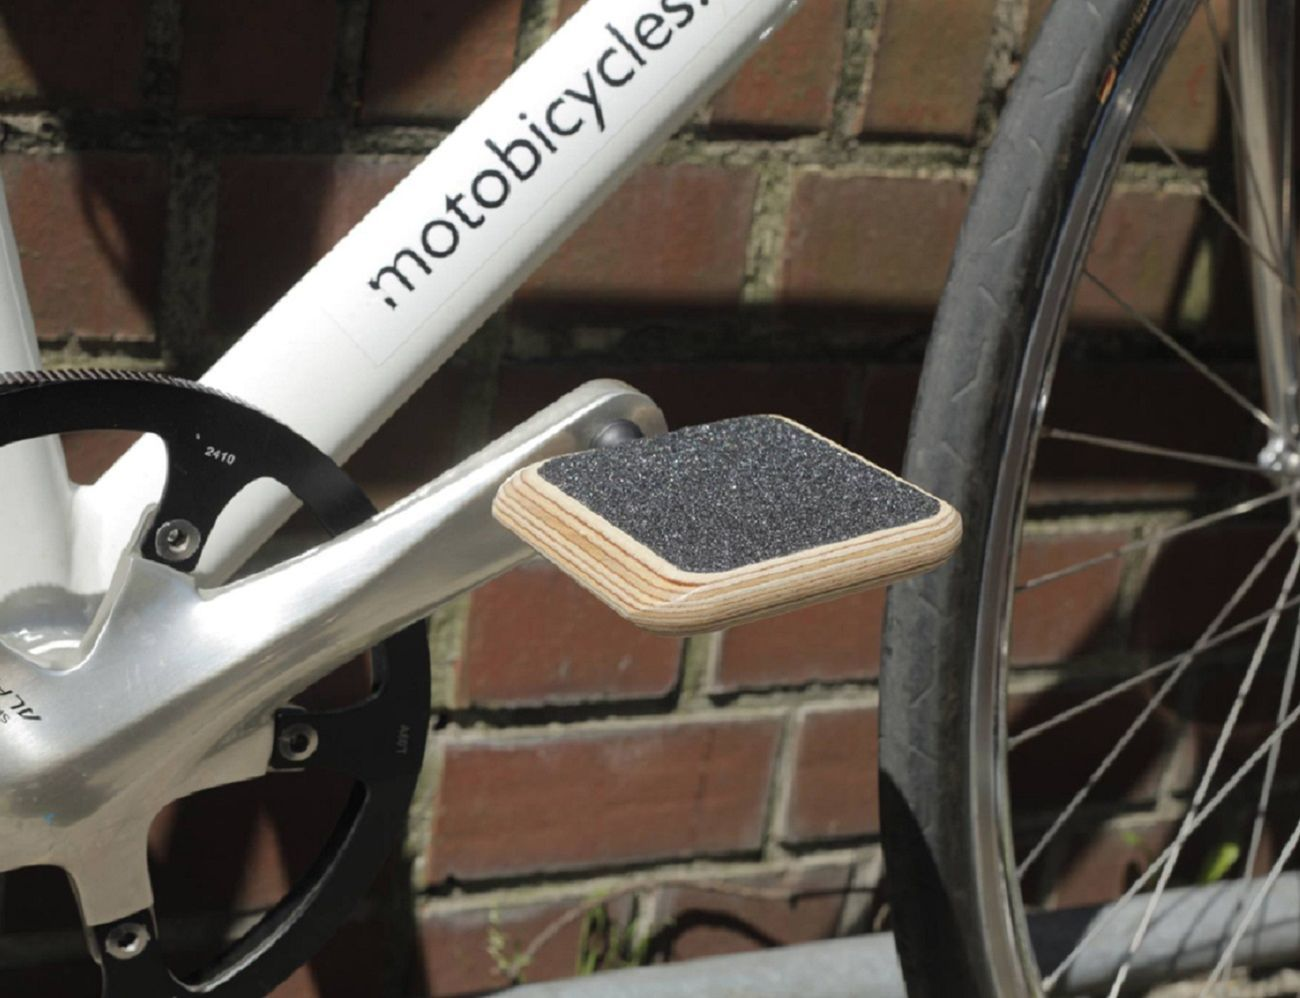 Moto Urban Wooden Bike Pedal